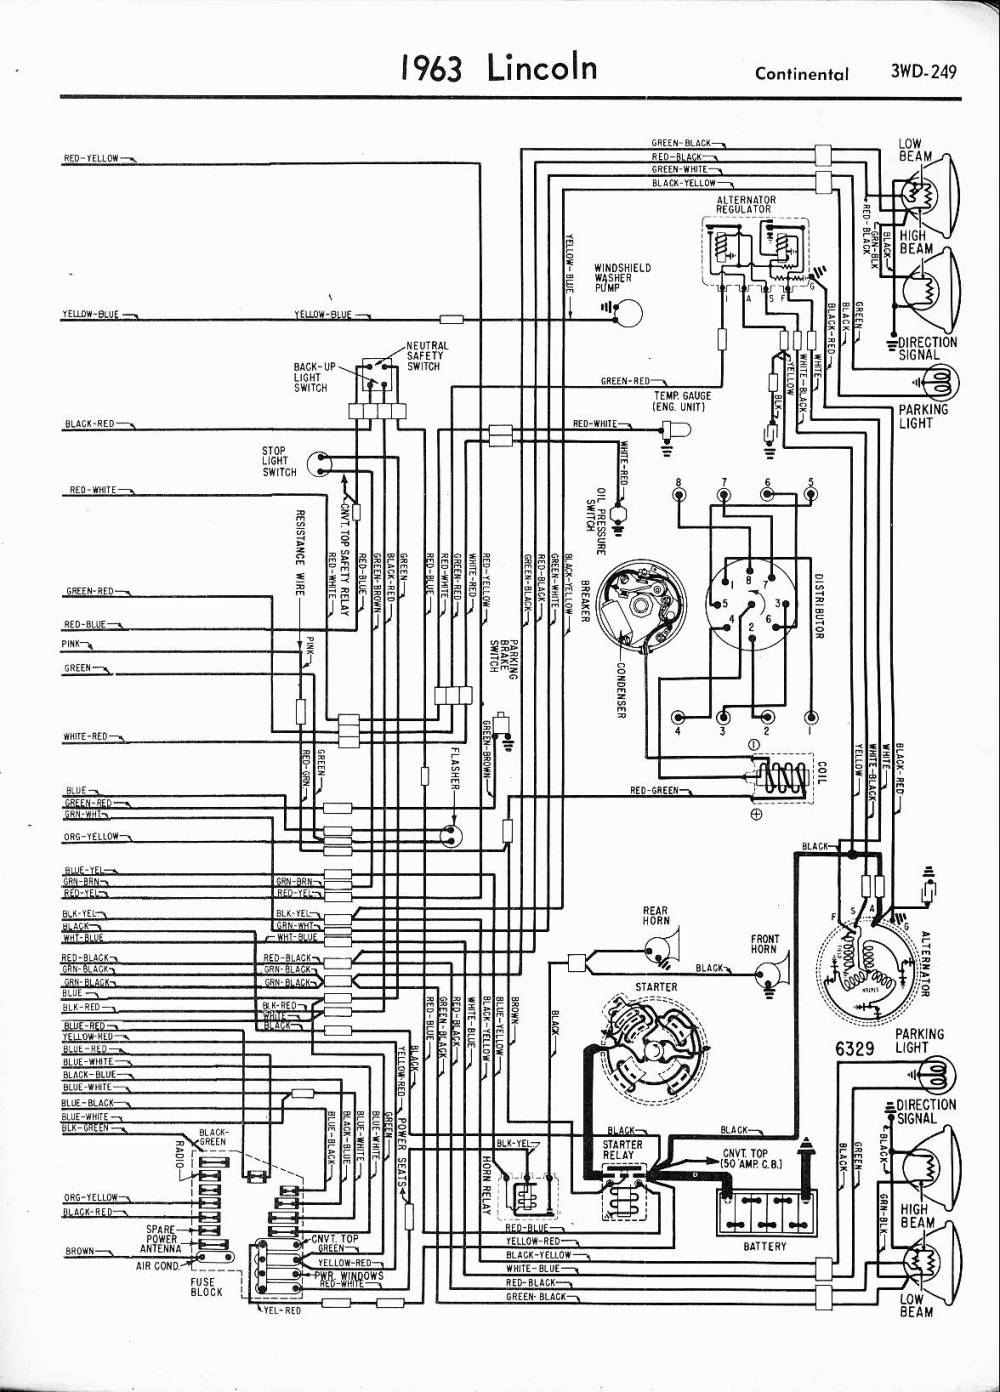 medium resolution of 1966 lincoln wiring diagram wiring diagram detailed mcneilus wiring diagrams lincoln continental convertible top wiring diagram